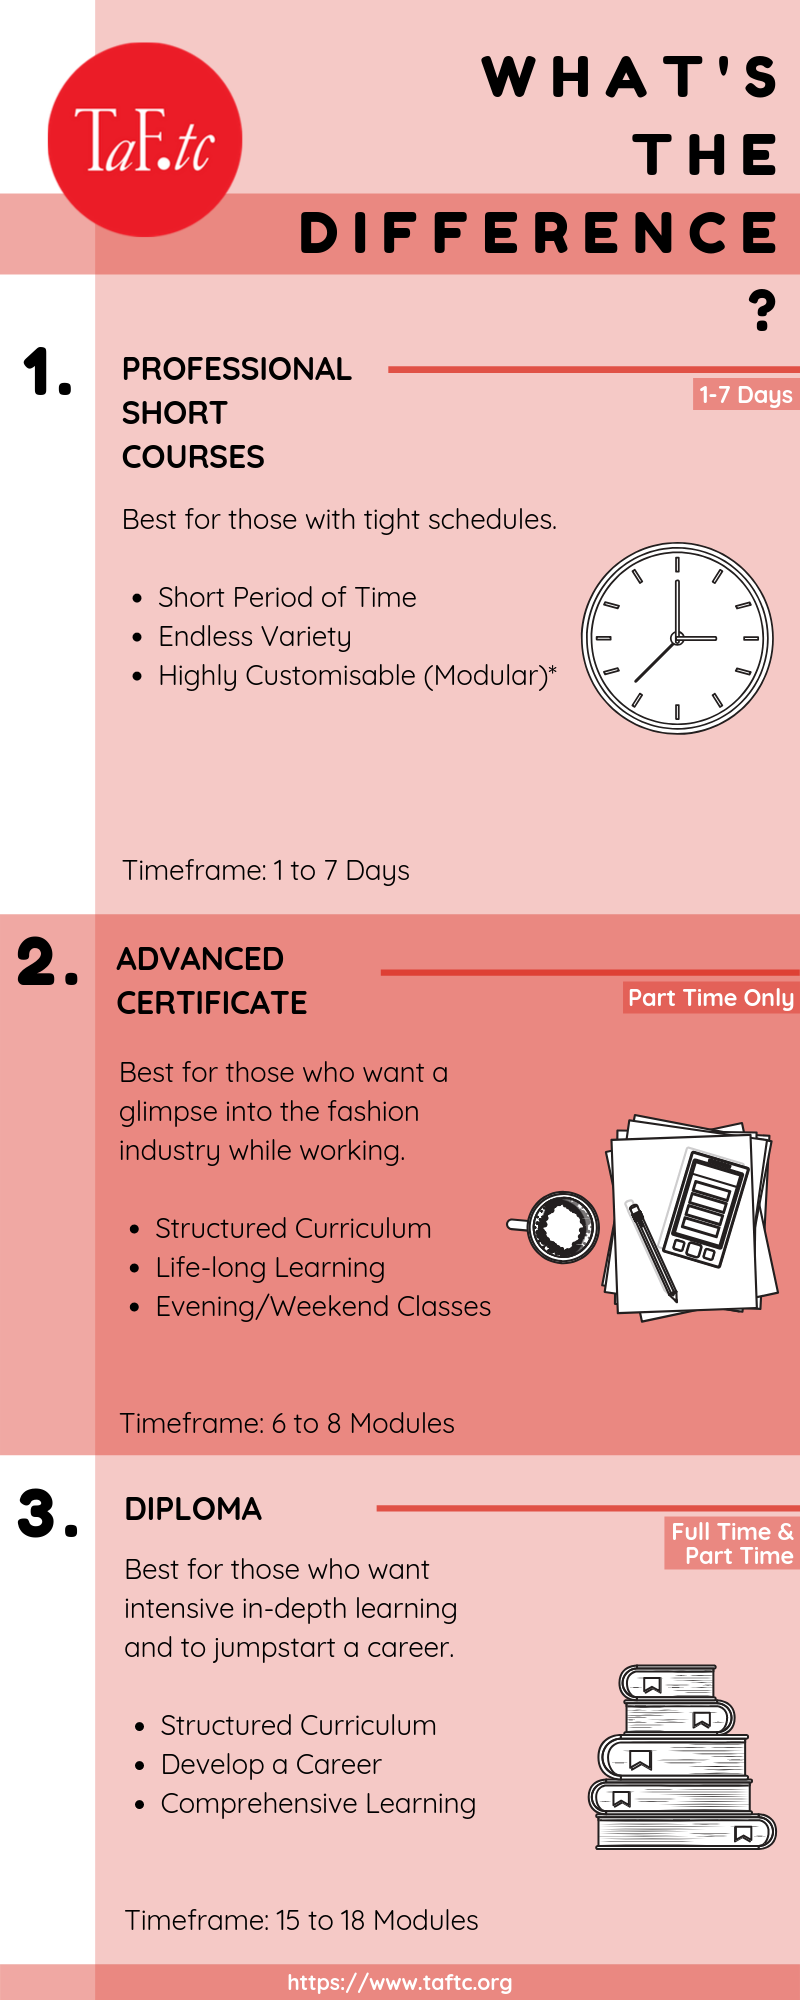 Infographic for difference between Professional Short Course, Advanced Certificate and Professional Diploma in Textile and Fashion Industry Training Centre (TaF.tc)